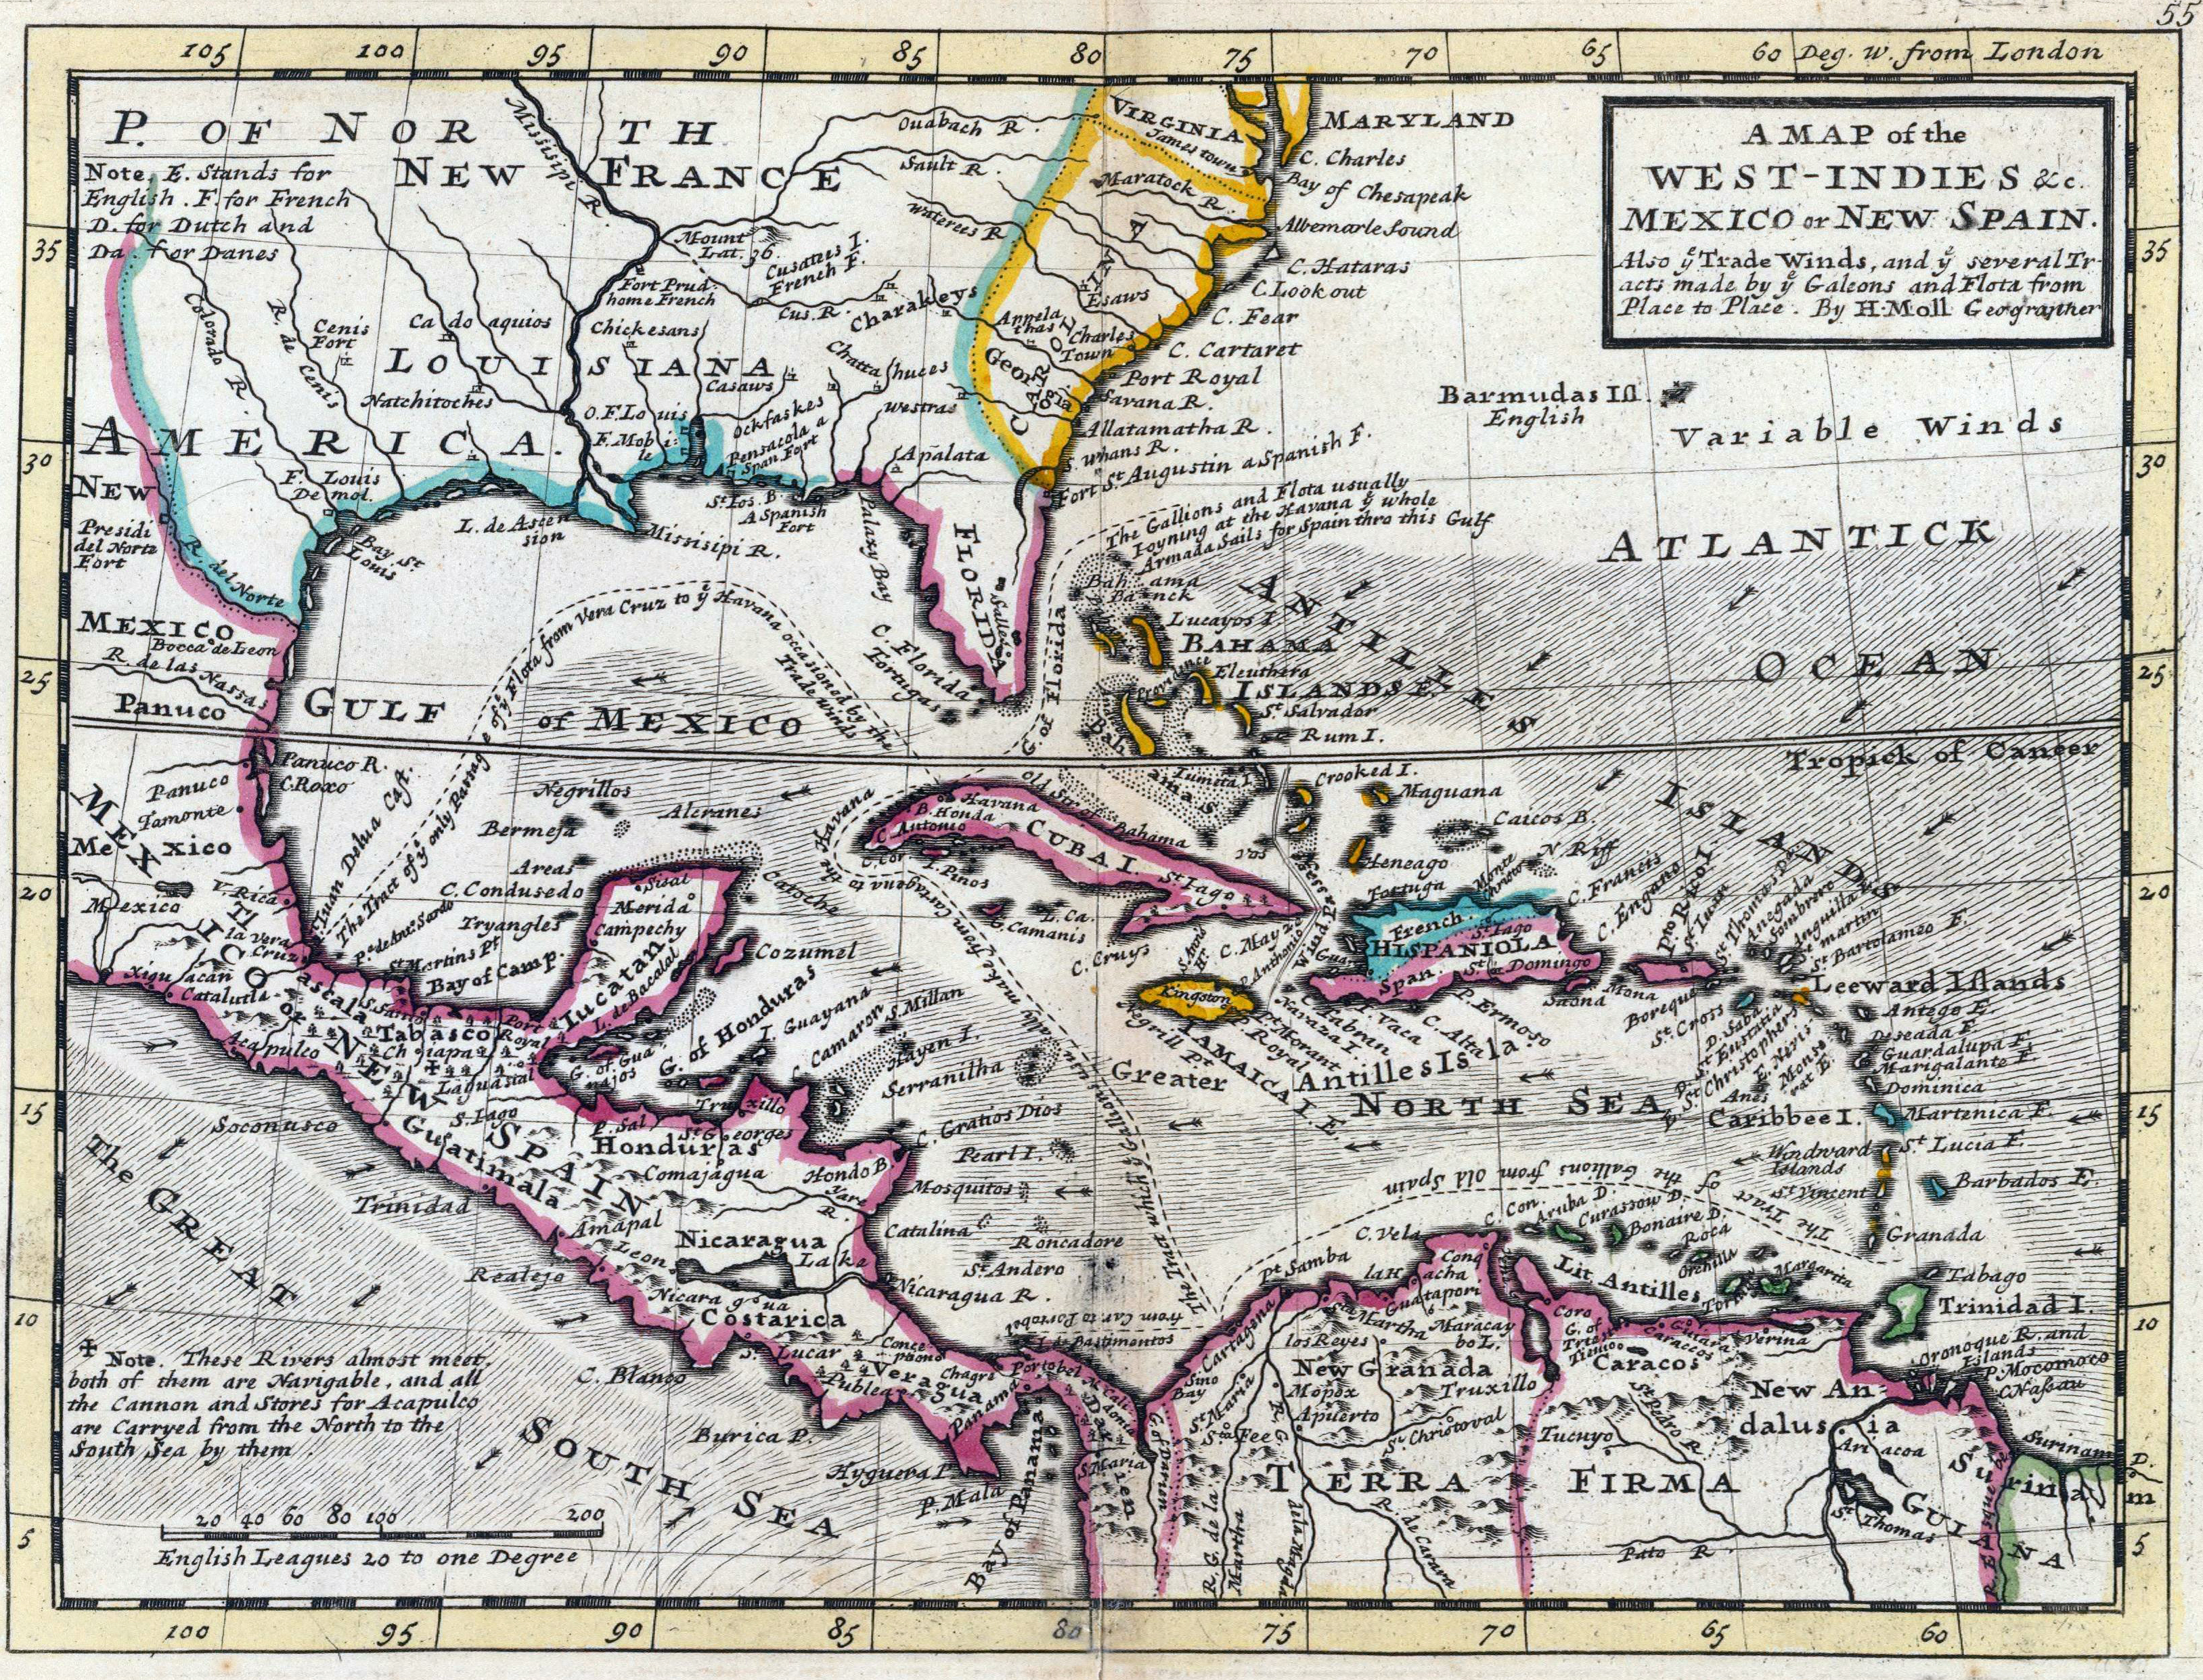 The British Empire in the Caribbean Maps